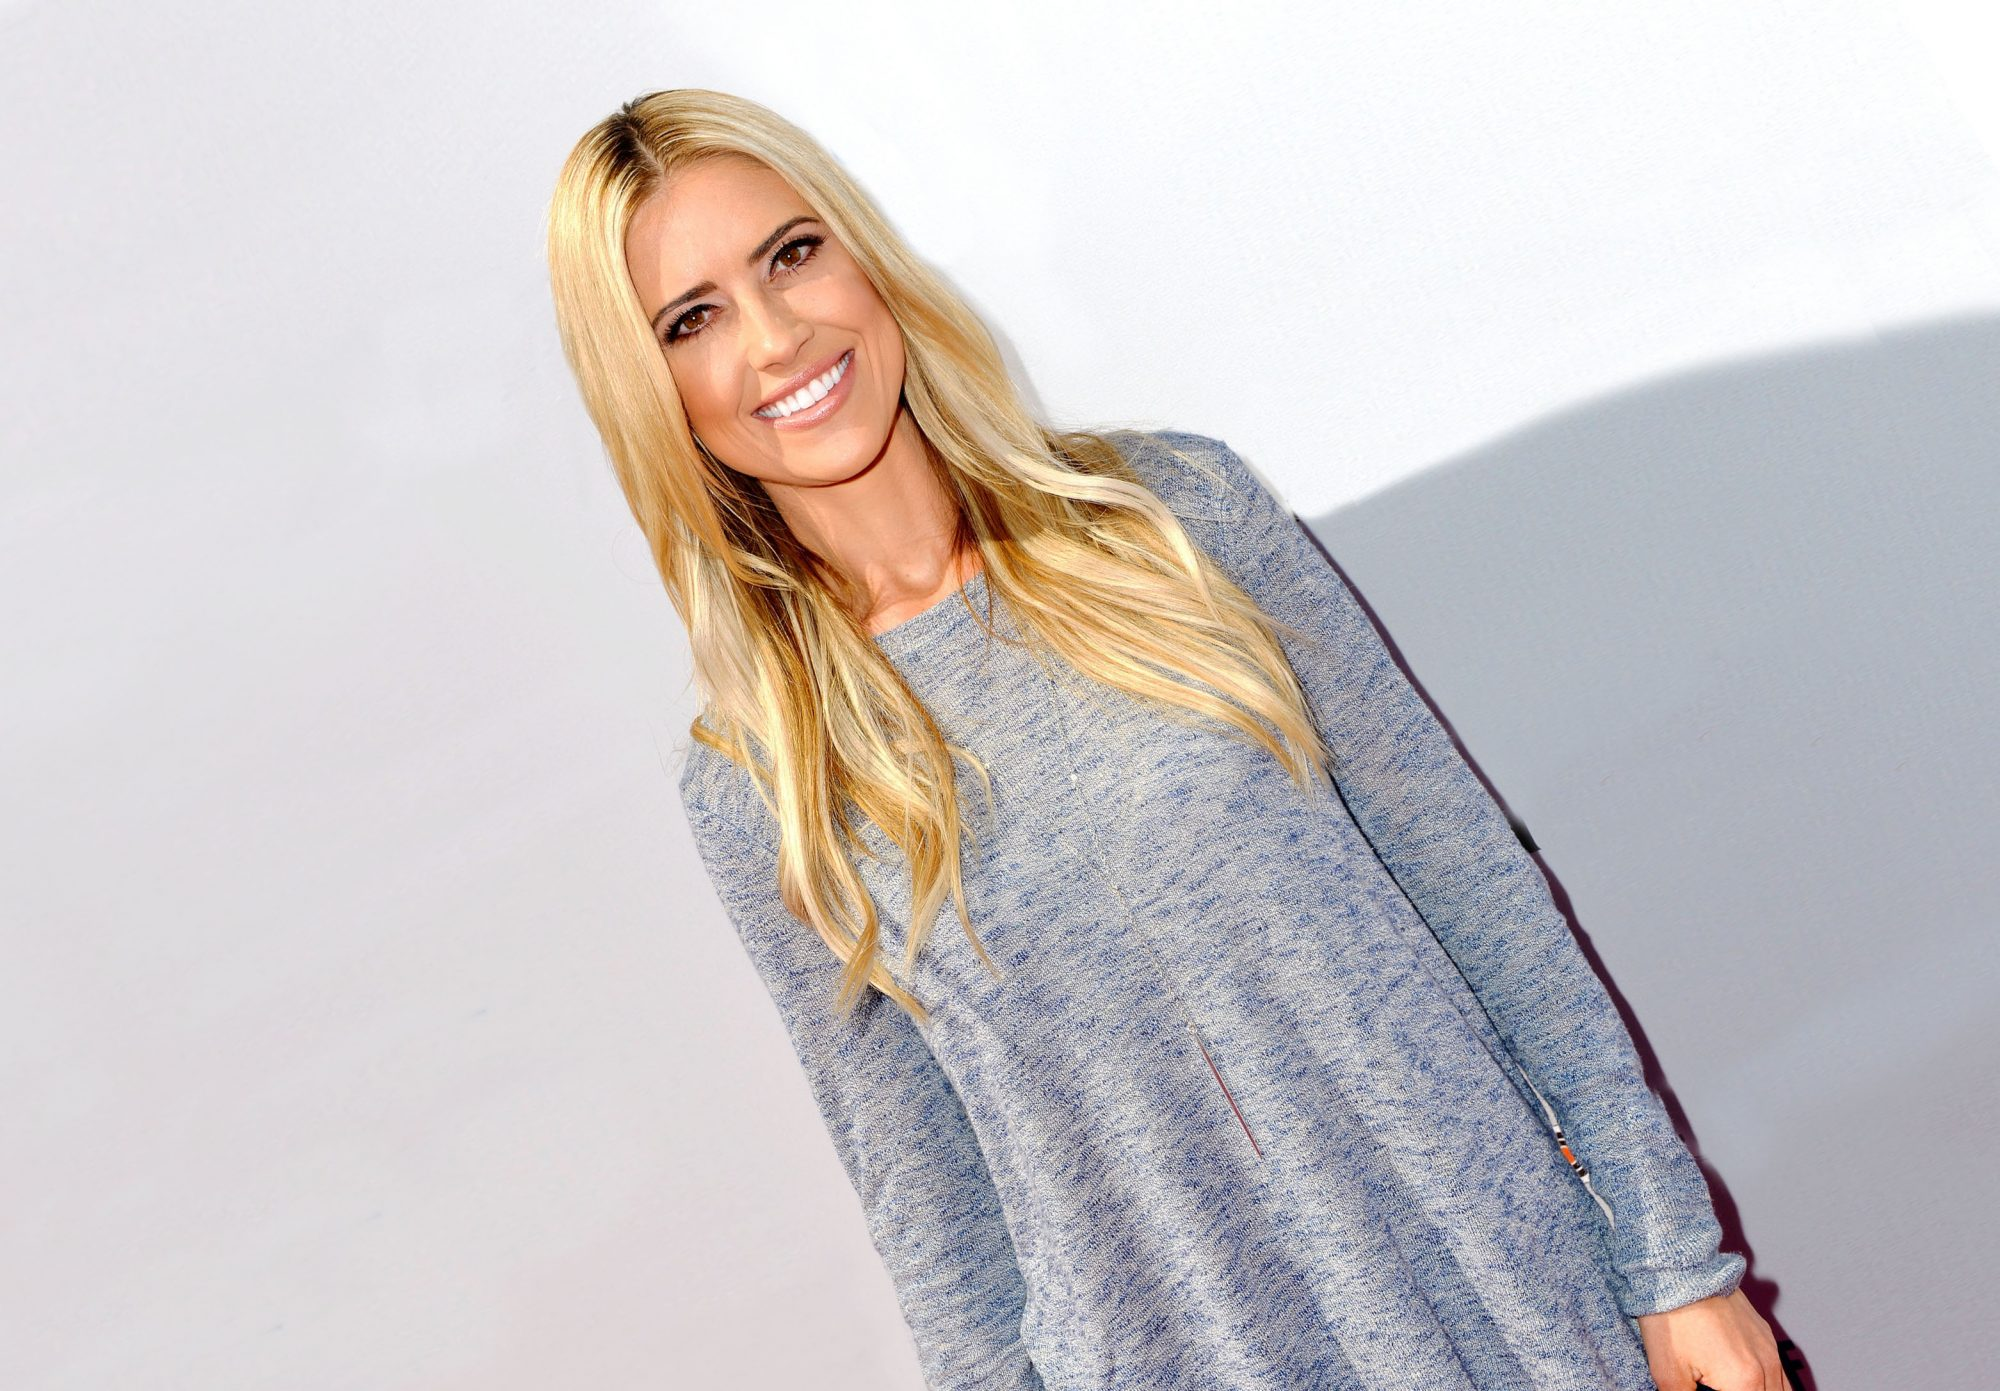 Christina El Moussa Shares Her Go-To Workout and How Her Kids Always Keep Her Moving